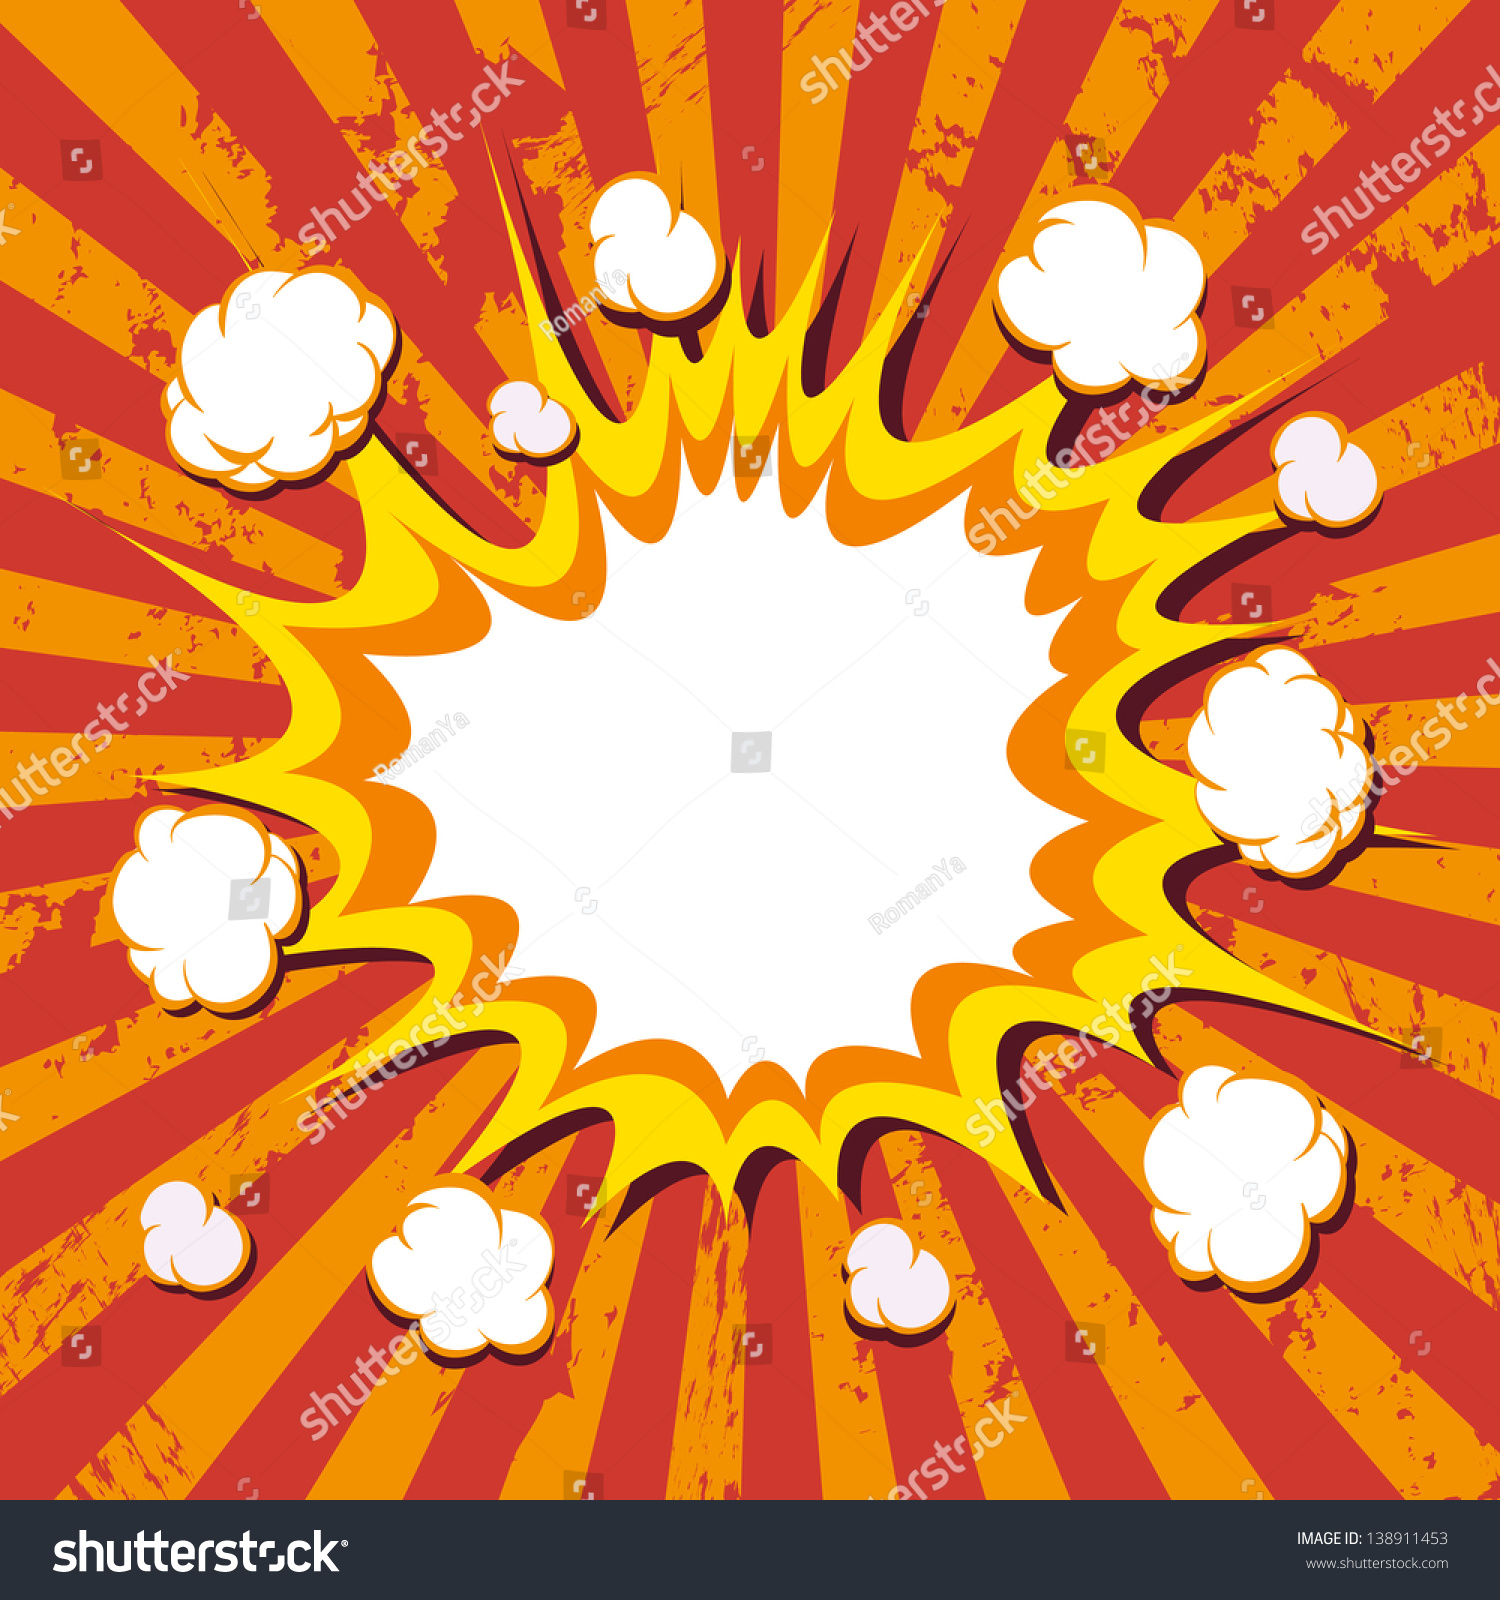 background boom comic book explosion stock vector royalty free